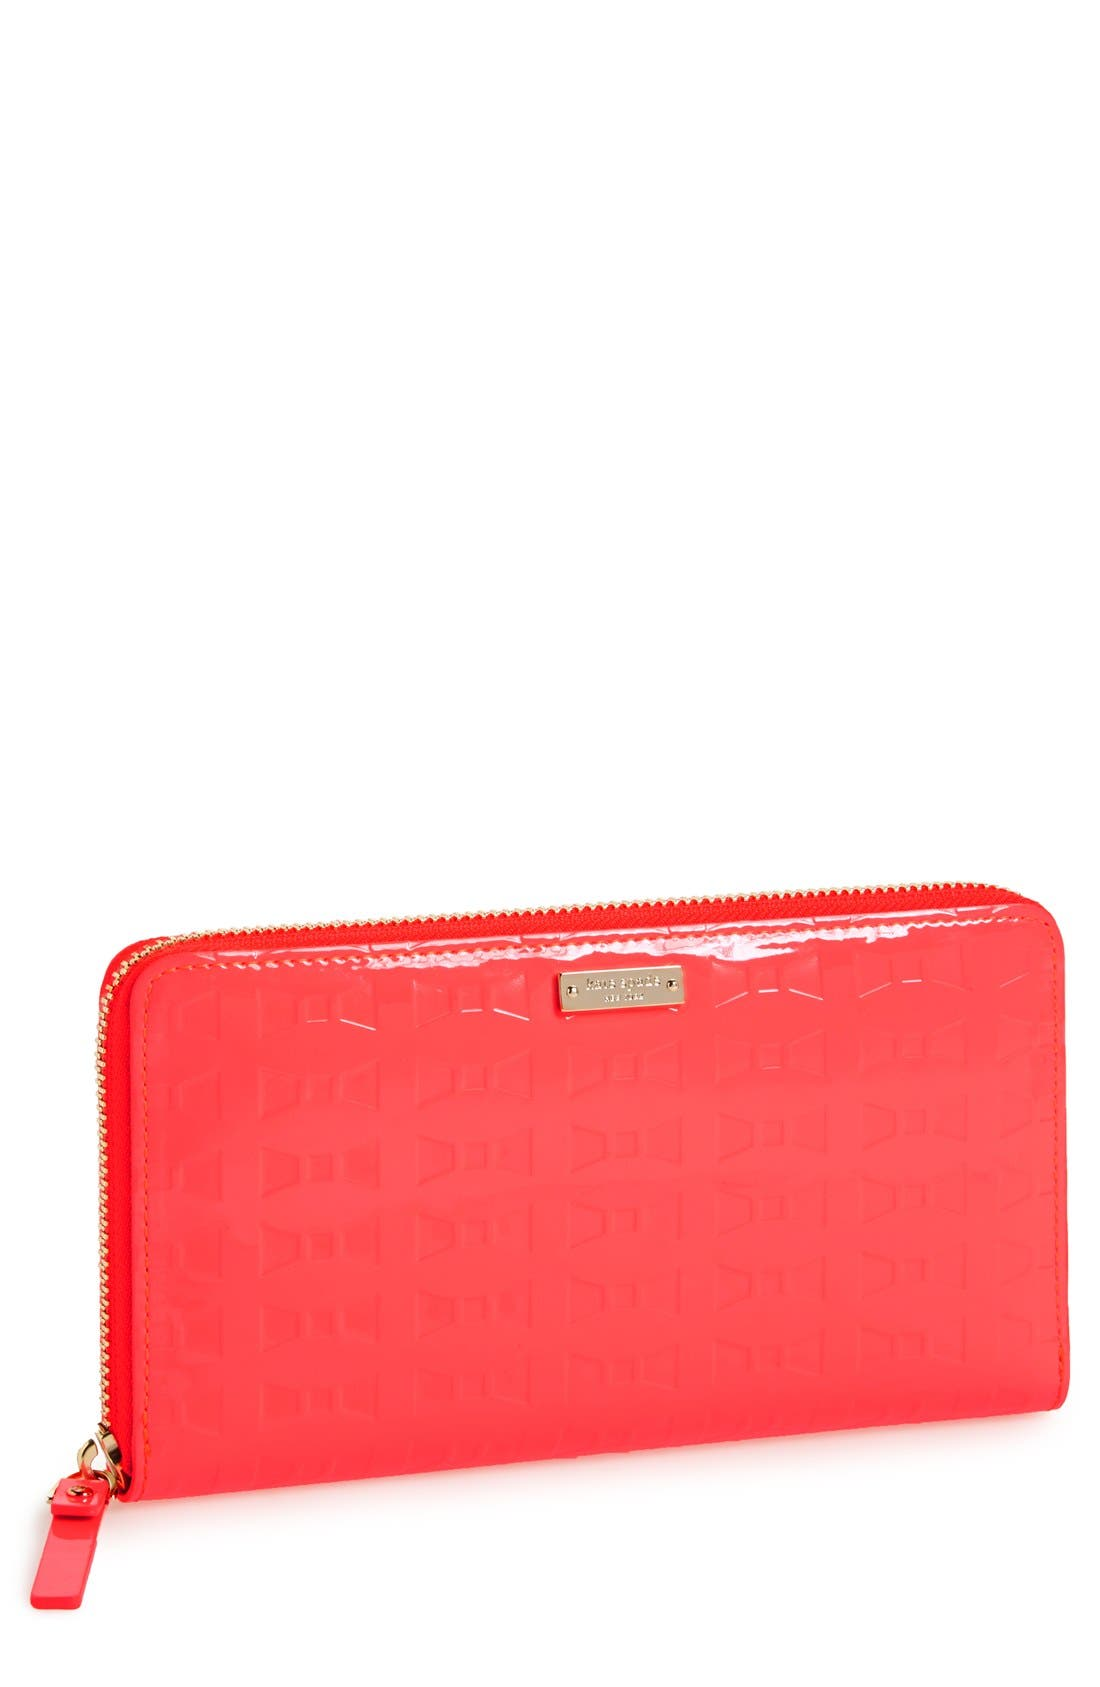 Alternate Image 1 Selected - kate spade new york 'fancy that - lacey' wallet